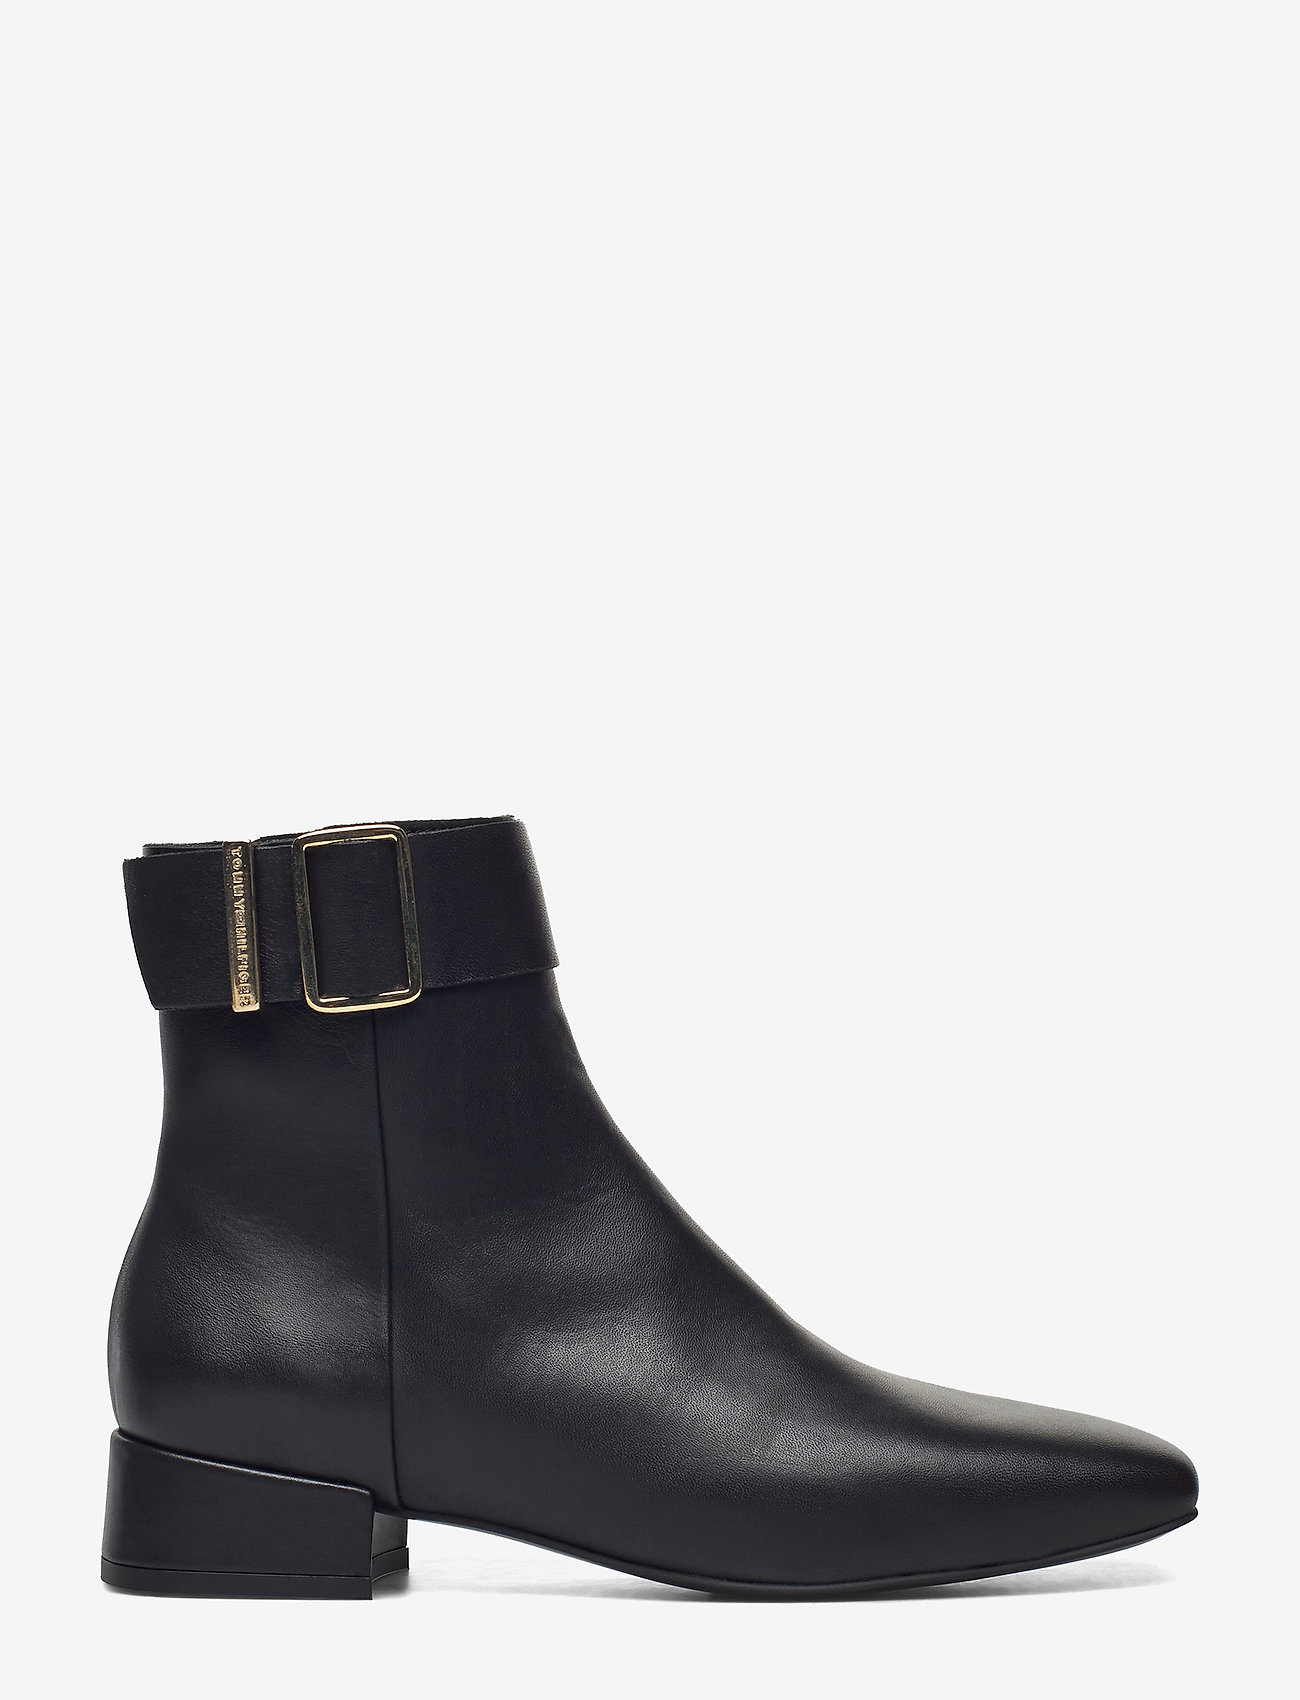 Tommy Hilfiger - LEATHER SQUARE TOE MID HEEL BOOT - flat ankle boots - black - 1